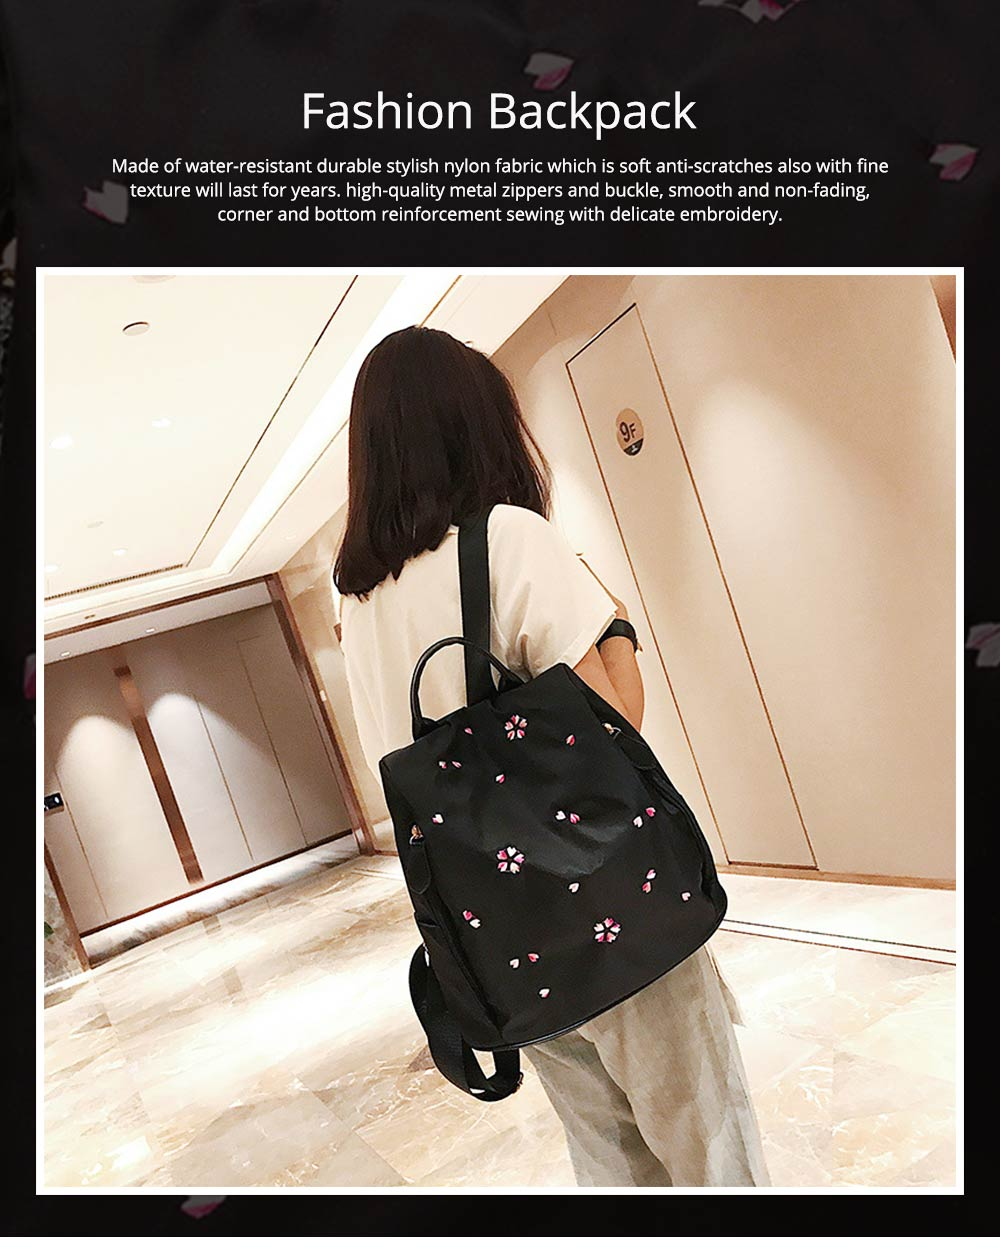 Fashion Black Backpack with Waterproof Nylon, Embroidery Flip Cover Shoulder Bag for Women Zipper Shoulder Bag 0